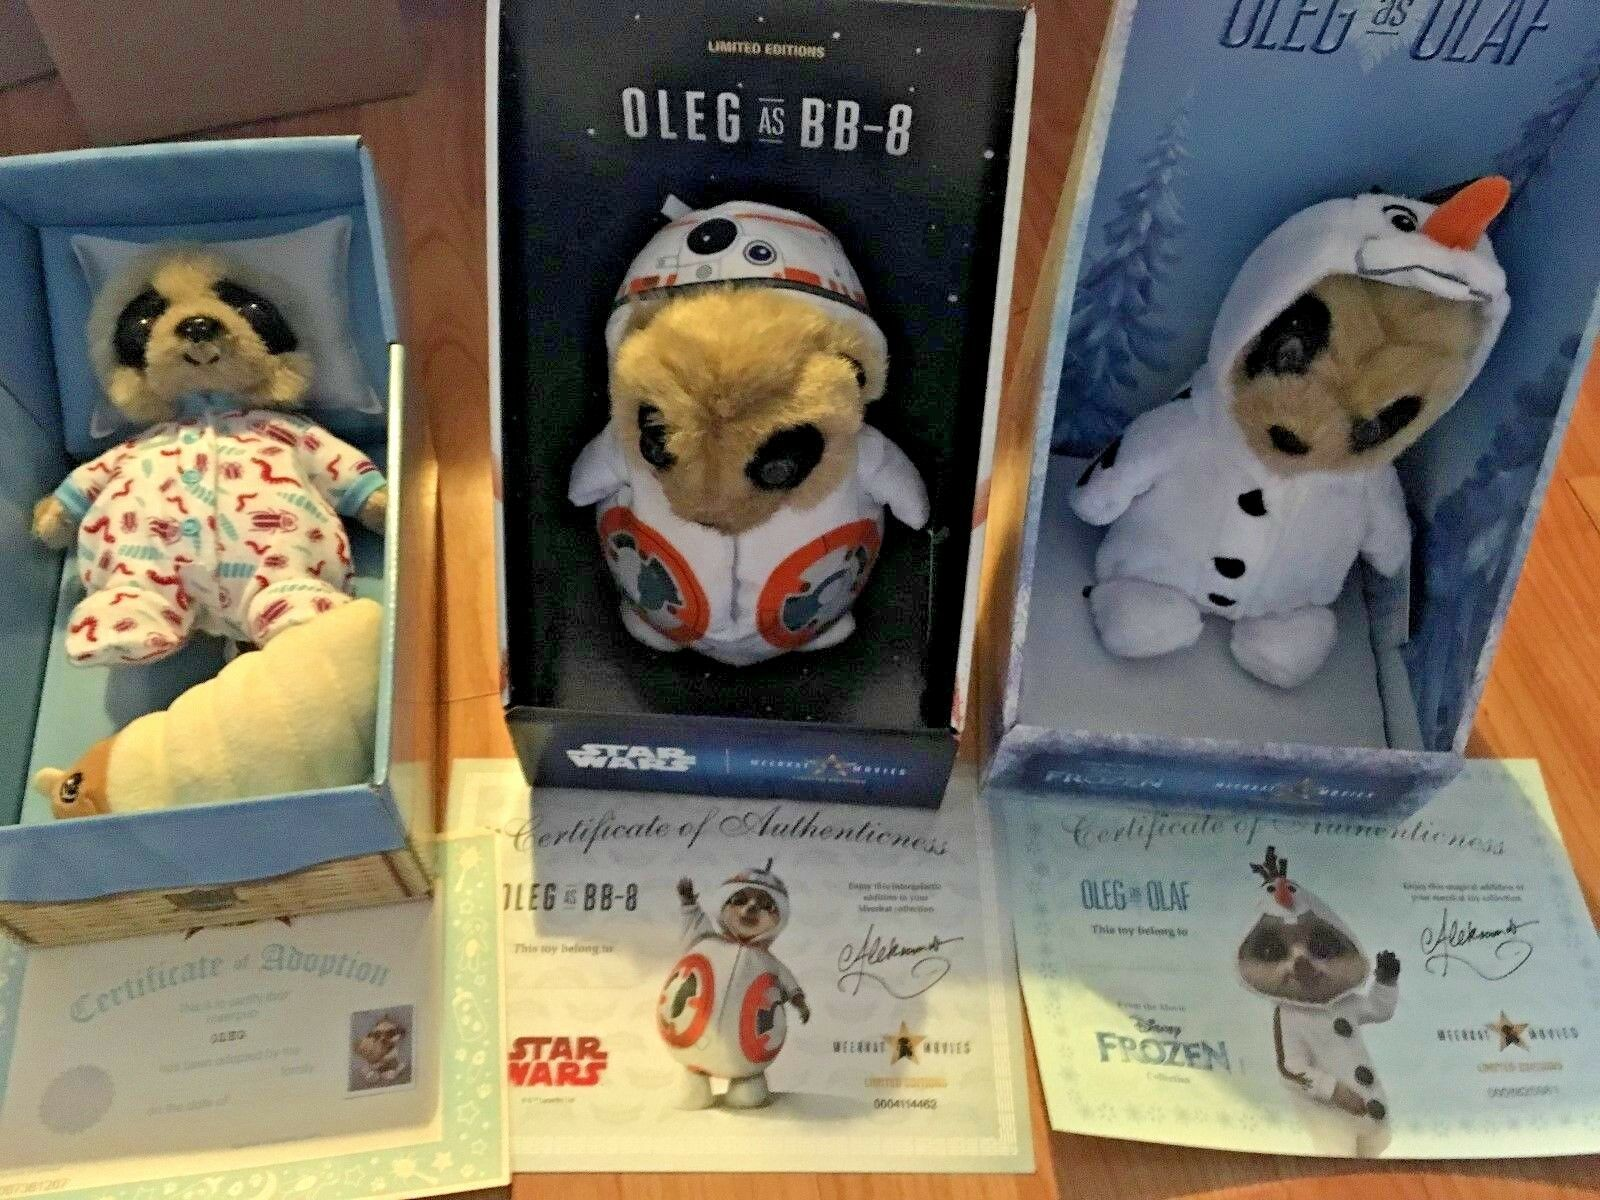 New 3 x Compare the Meerkat Oleg Toys - Olaf Frozen & BB8 Star Wars & Baby Oleg